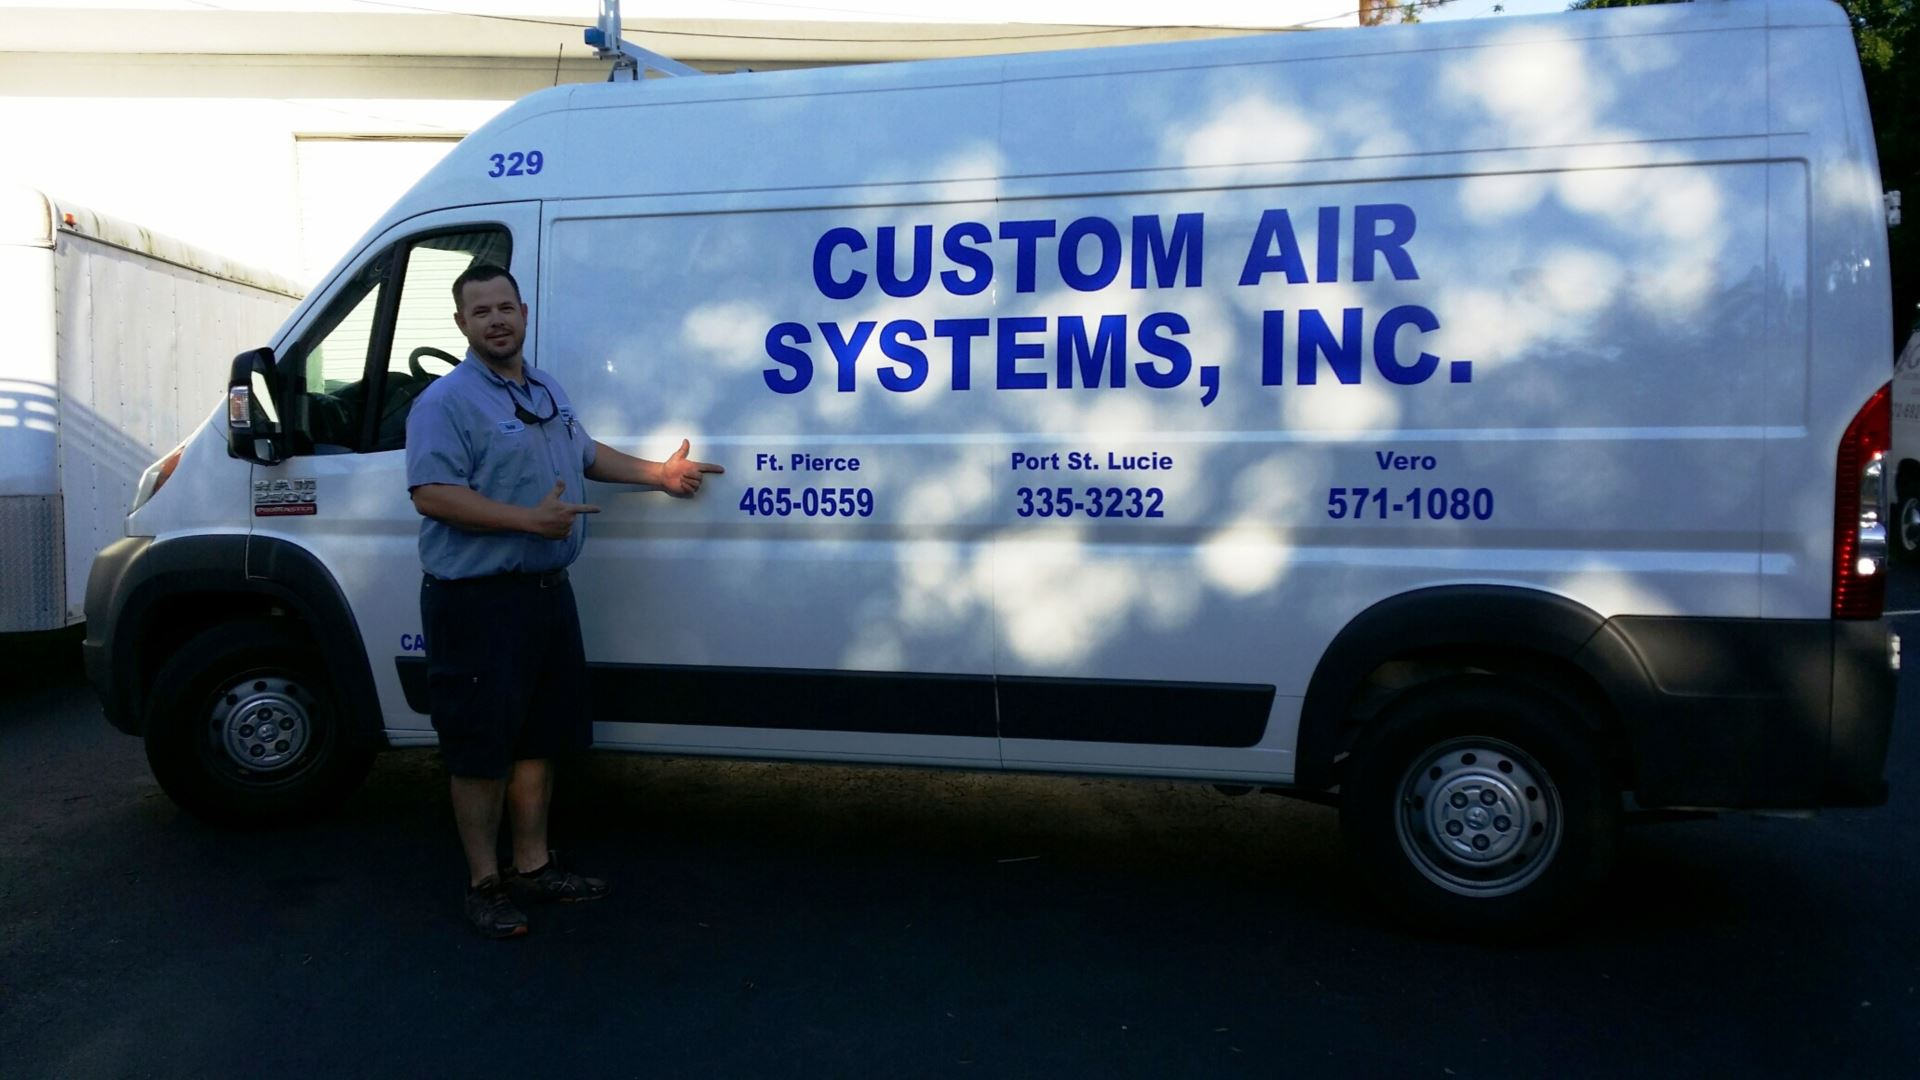 Nathan Gates our air condition and appliance technician has been with our team for 11 years.